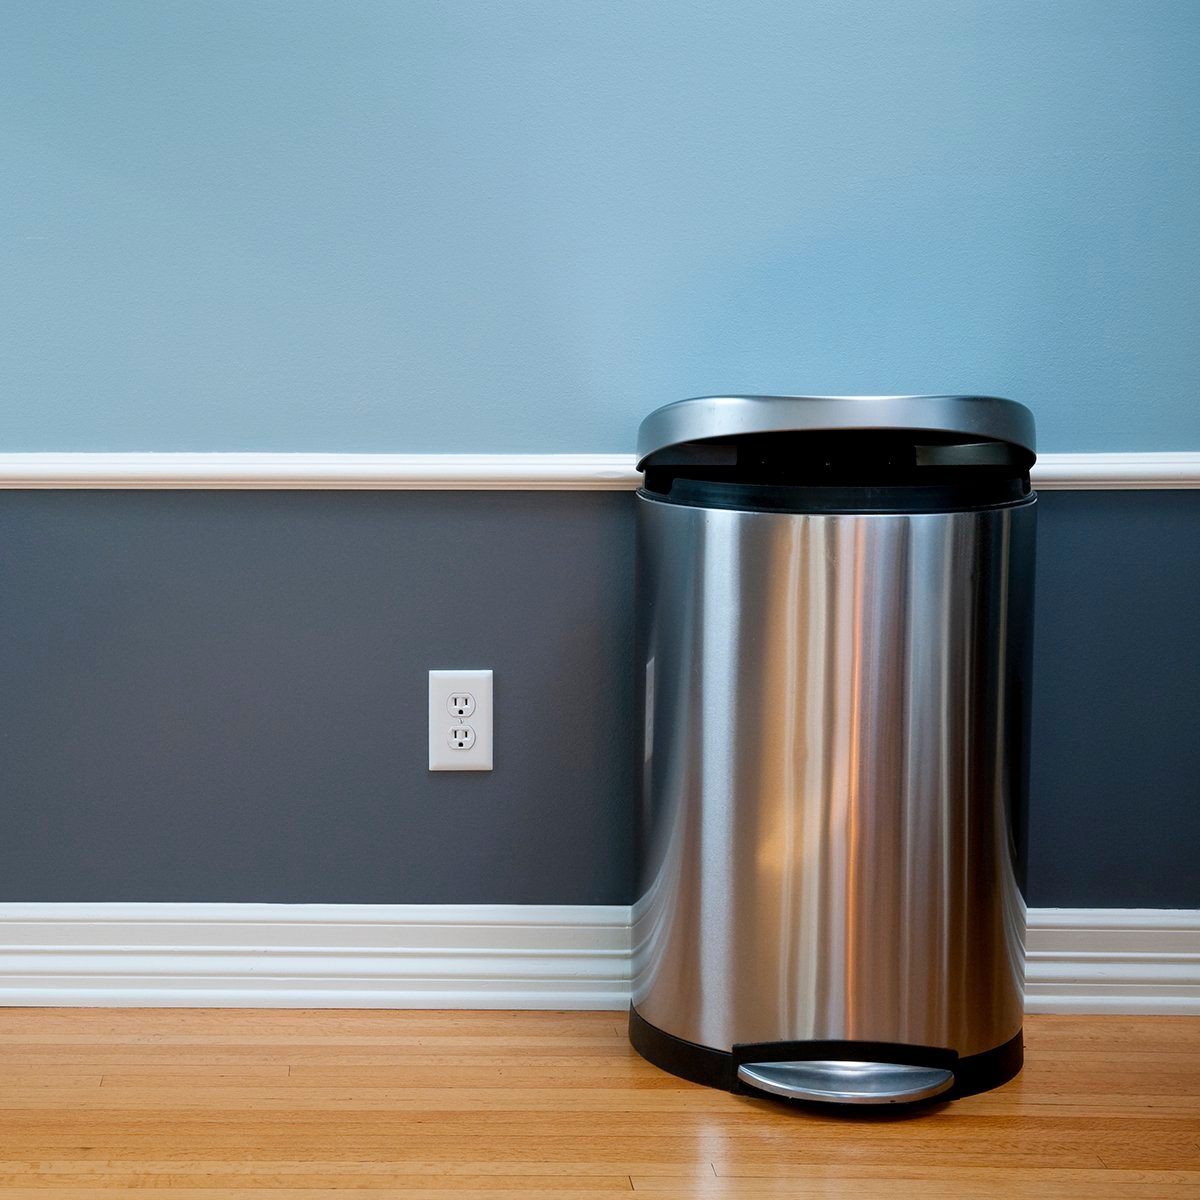 Open trash can in empty room with wood flooring, blue wainscoting and a power outlet.